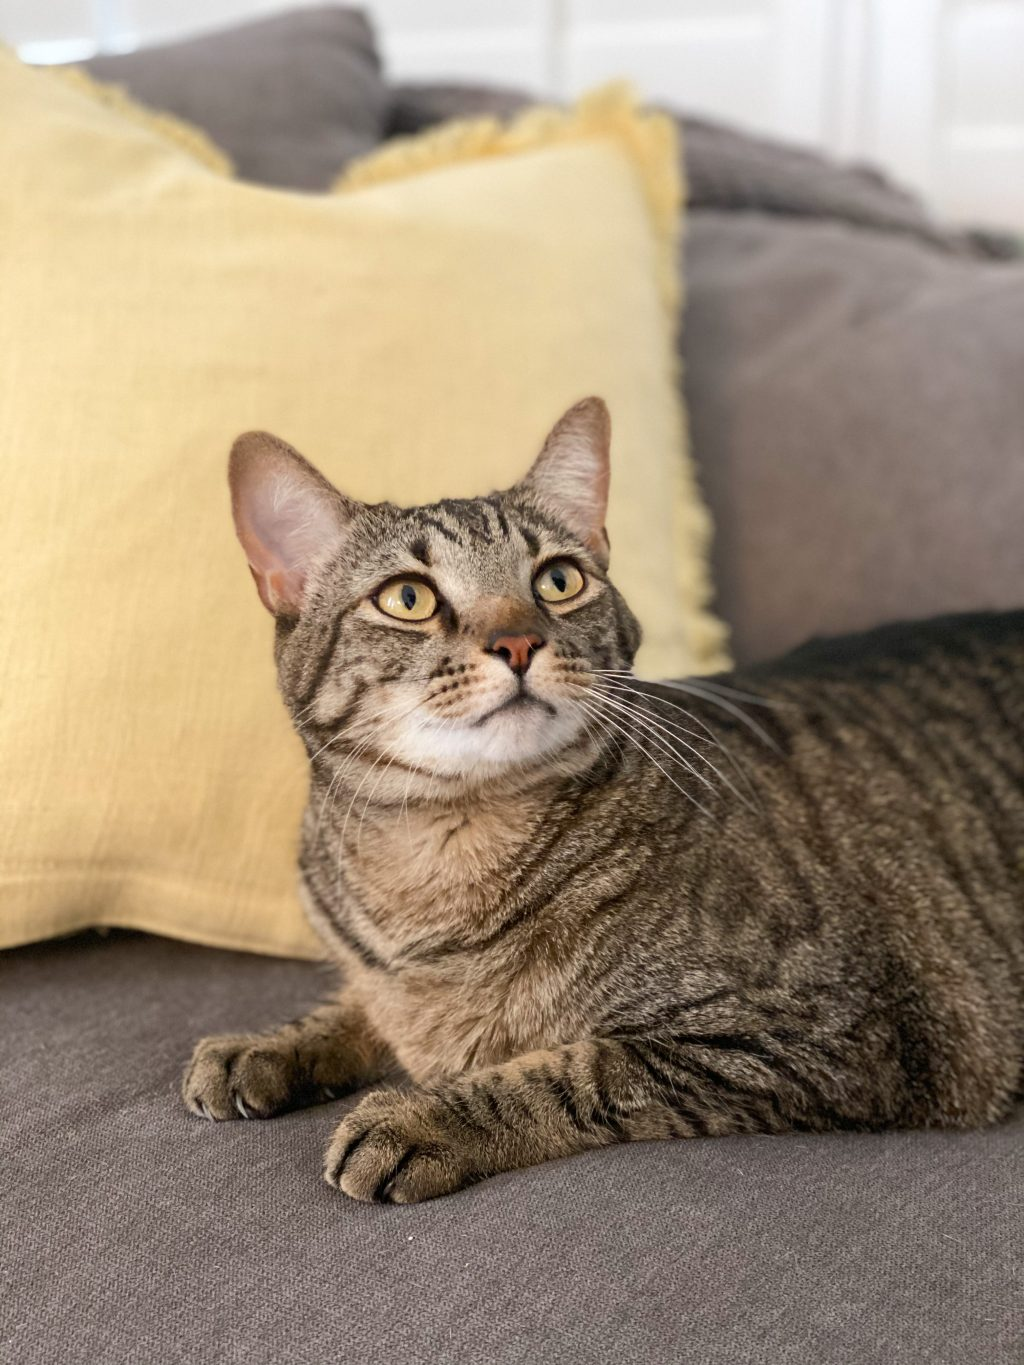 adult tiger tabby cat leaning on yellow pillow on gray couch